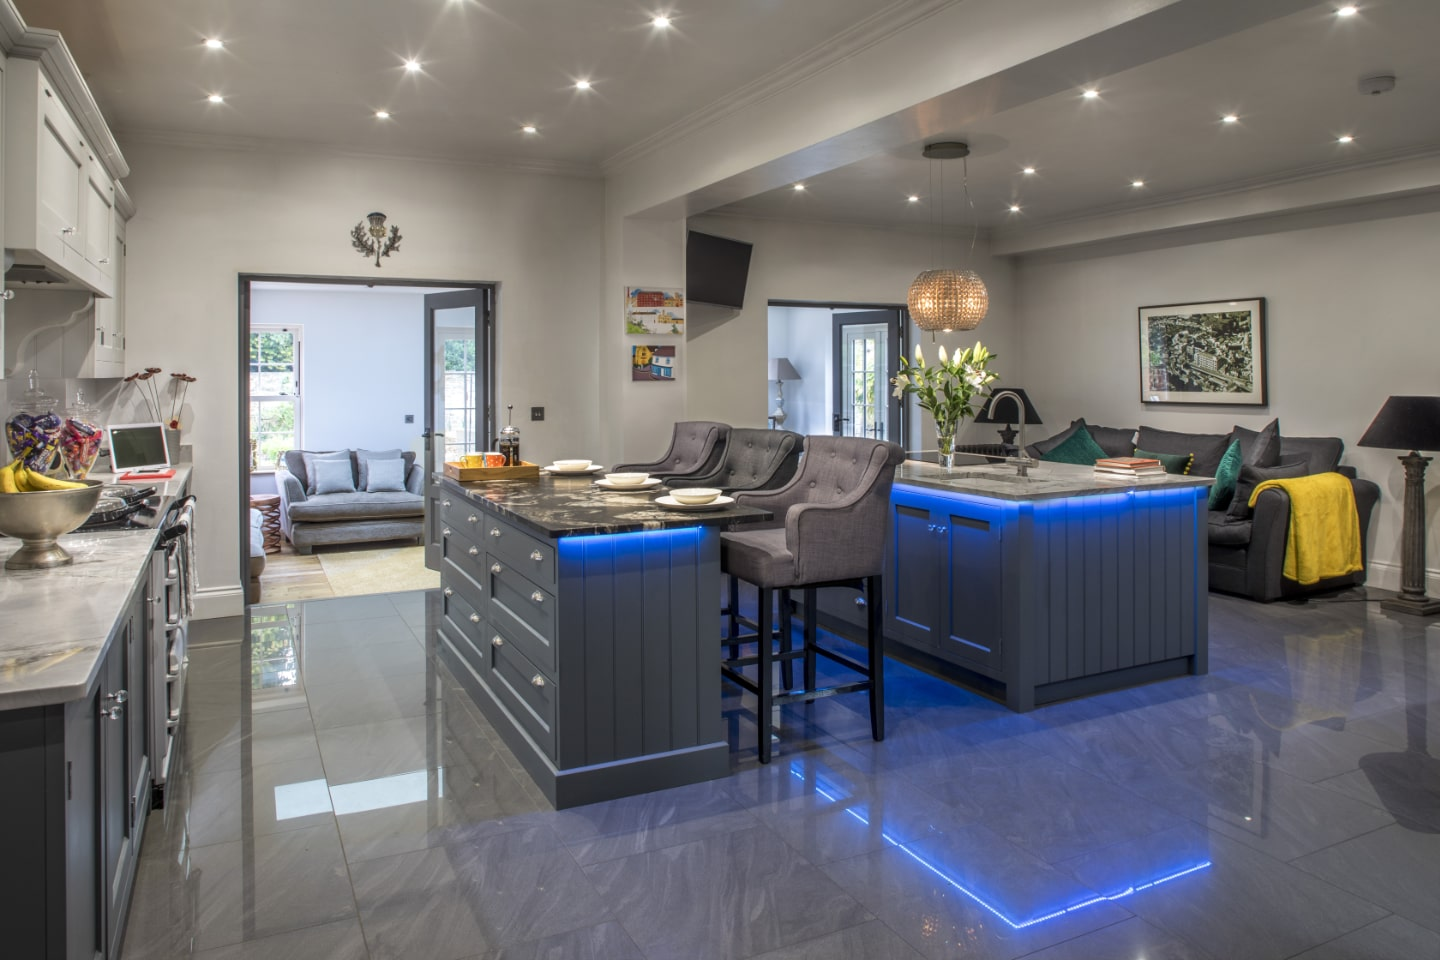 A bespoke kitchen with breakfast bar and blue LED lighting underneath.